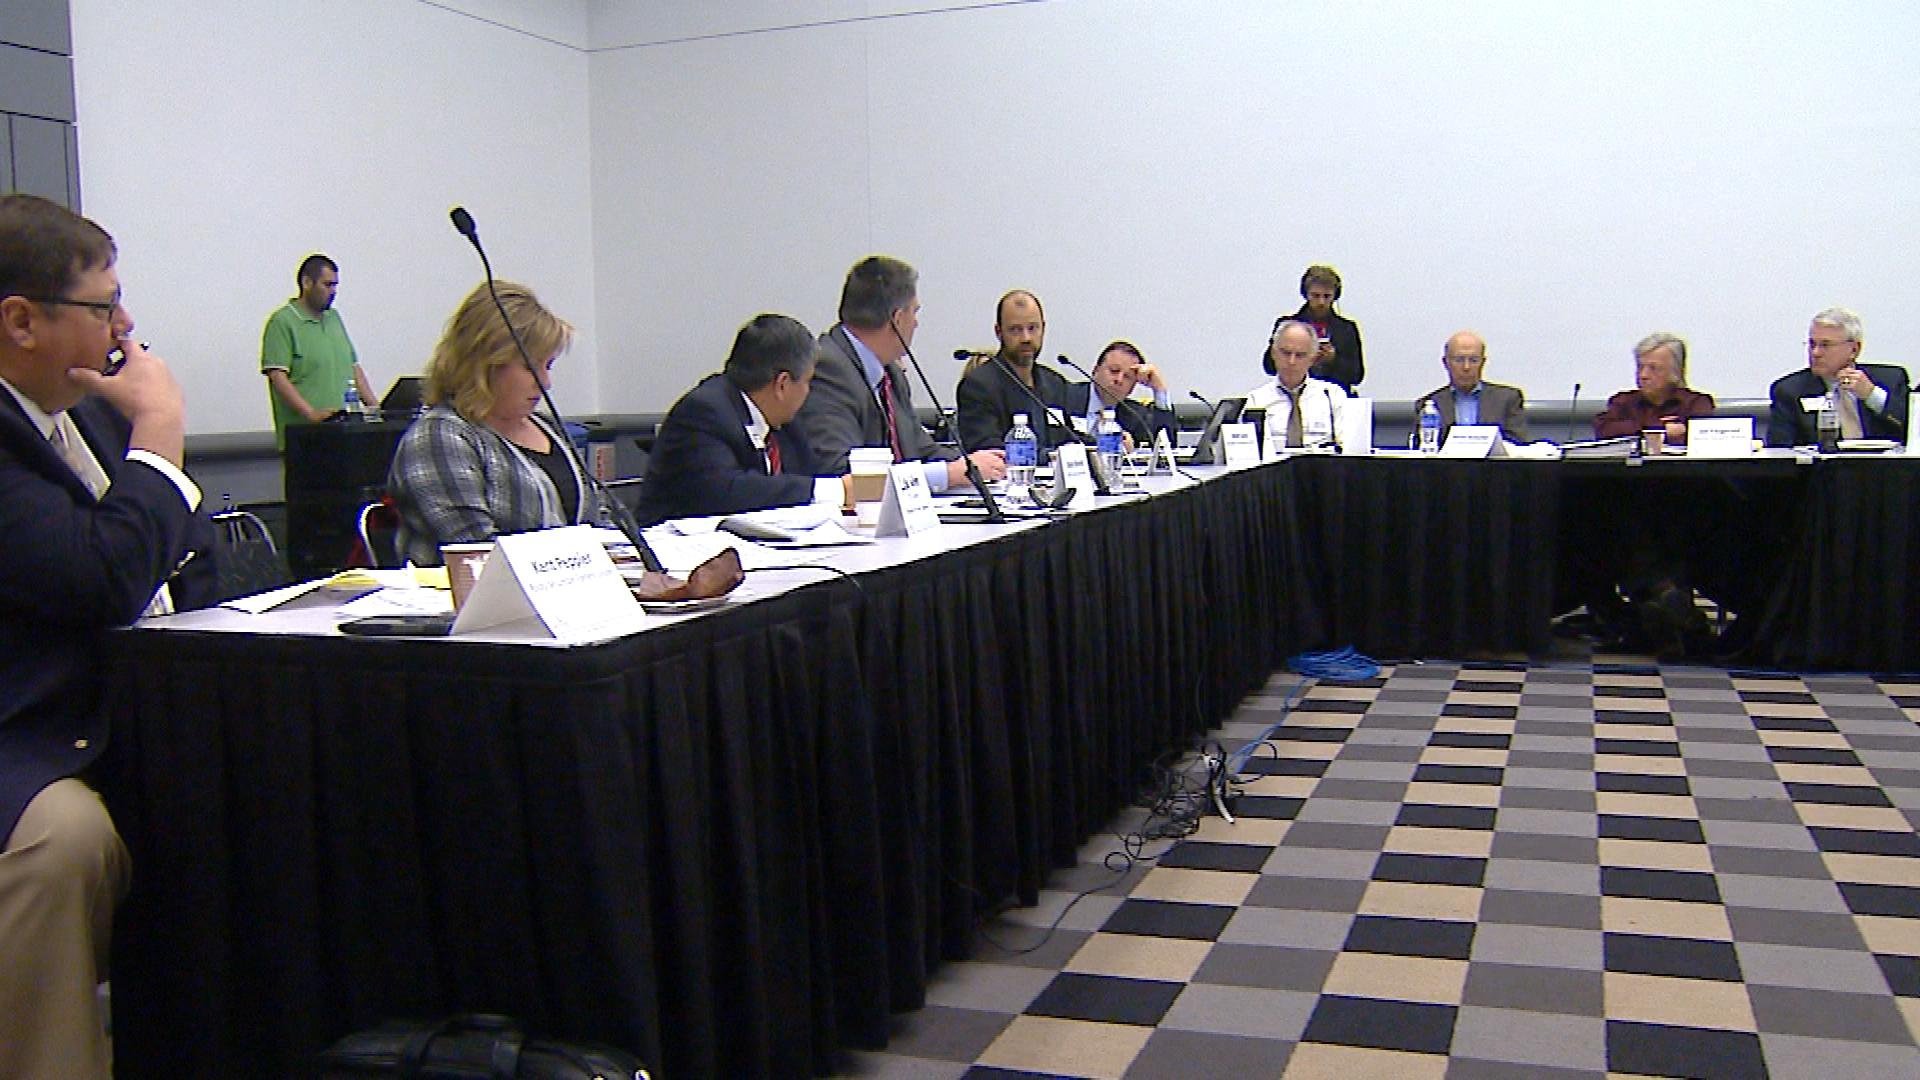 An image from Tuesday's meeting (credit: CBS)